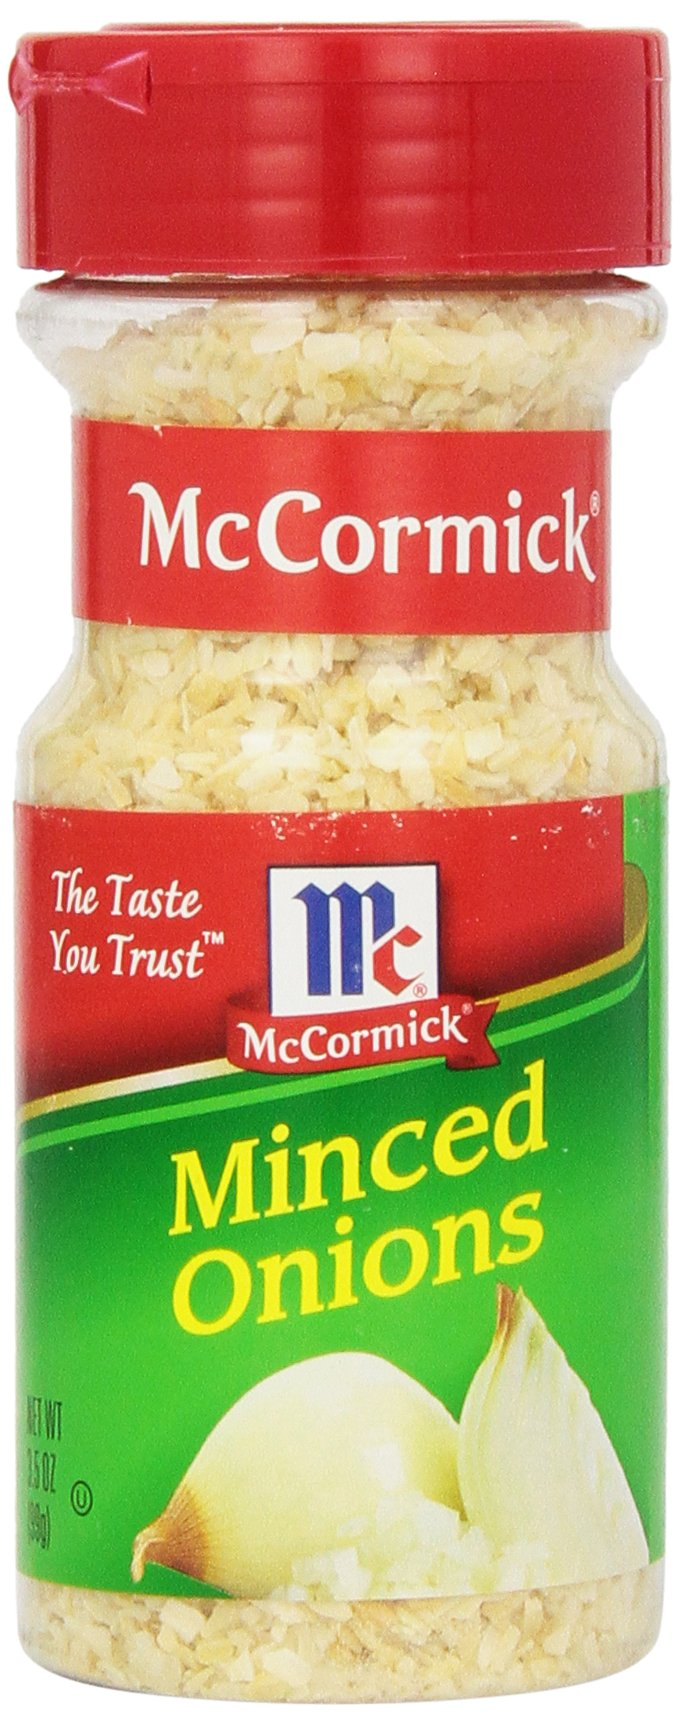 McCormick Minced Onions, 3.5-Ounce Jars (Pack of 6)